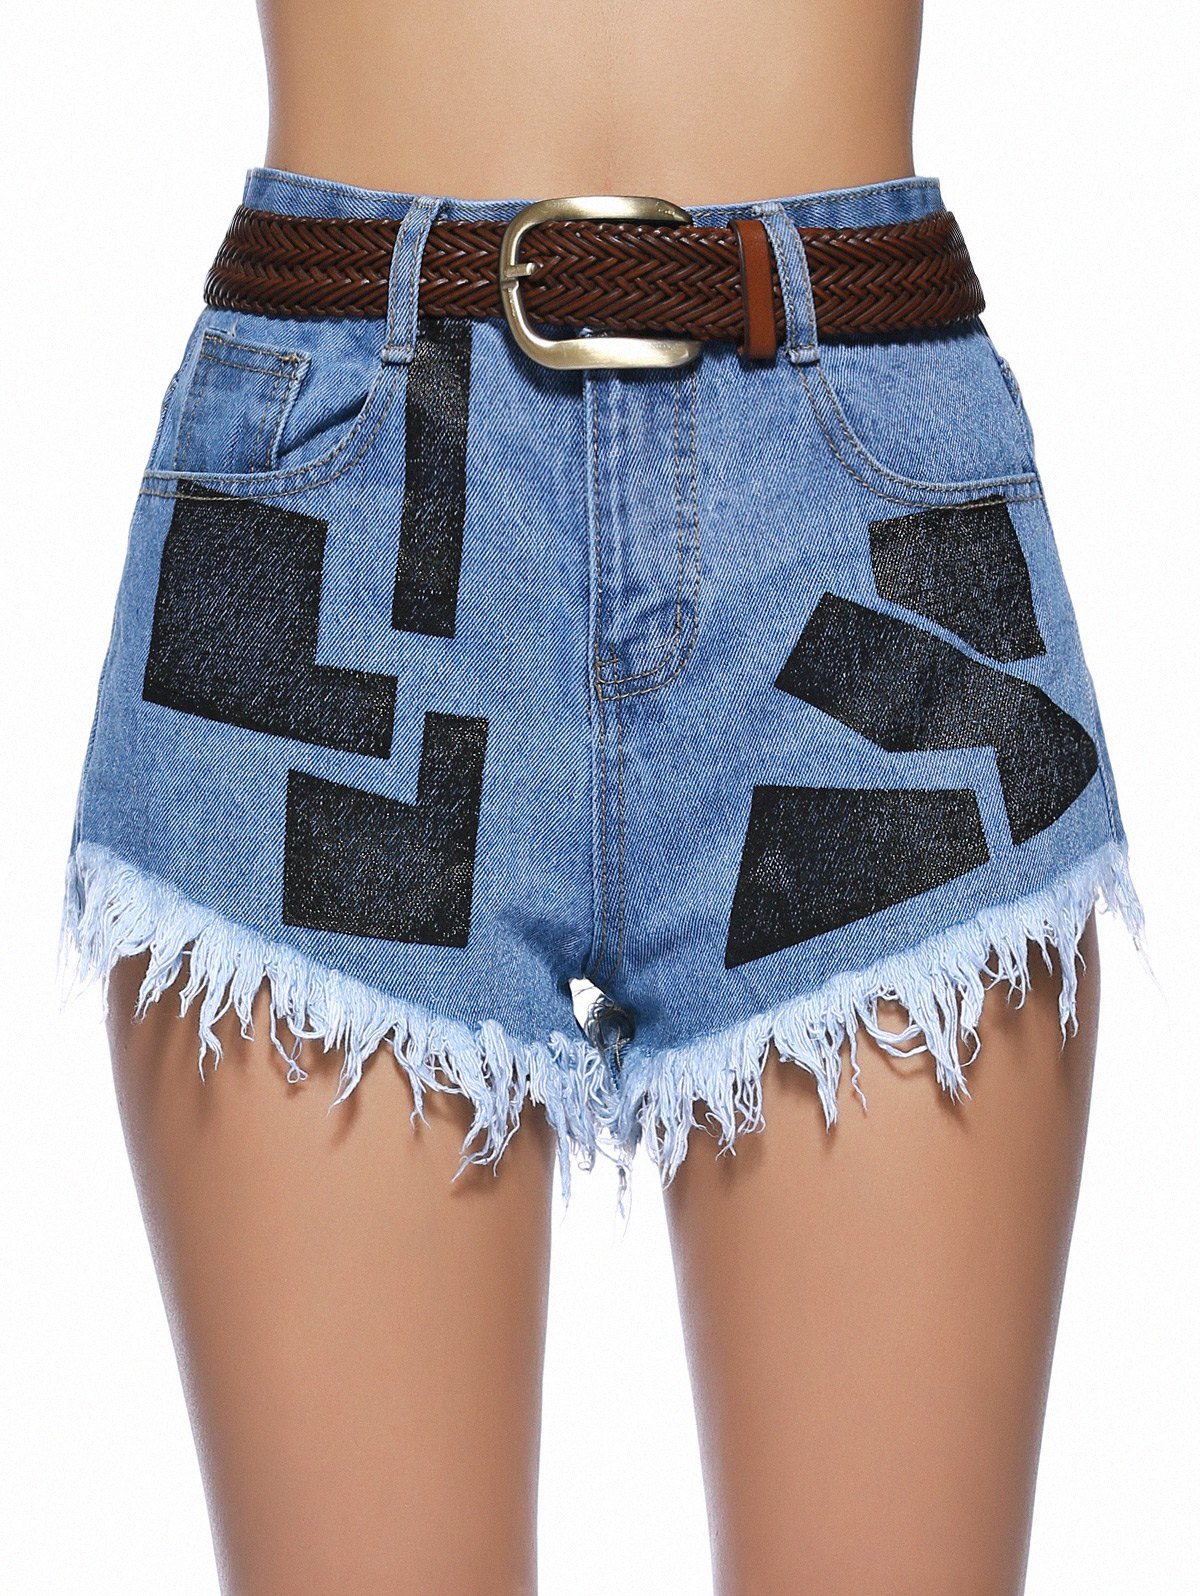 Stylish Geometrical Raw Hem Denim Shorts For Women - DENIM BLUE M